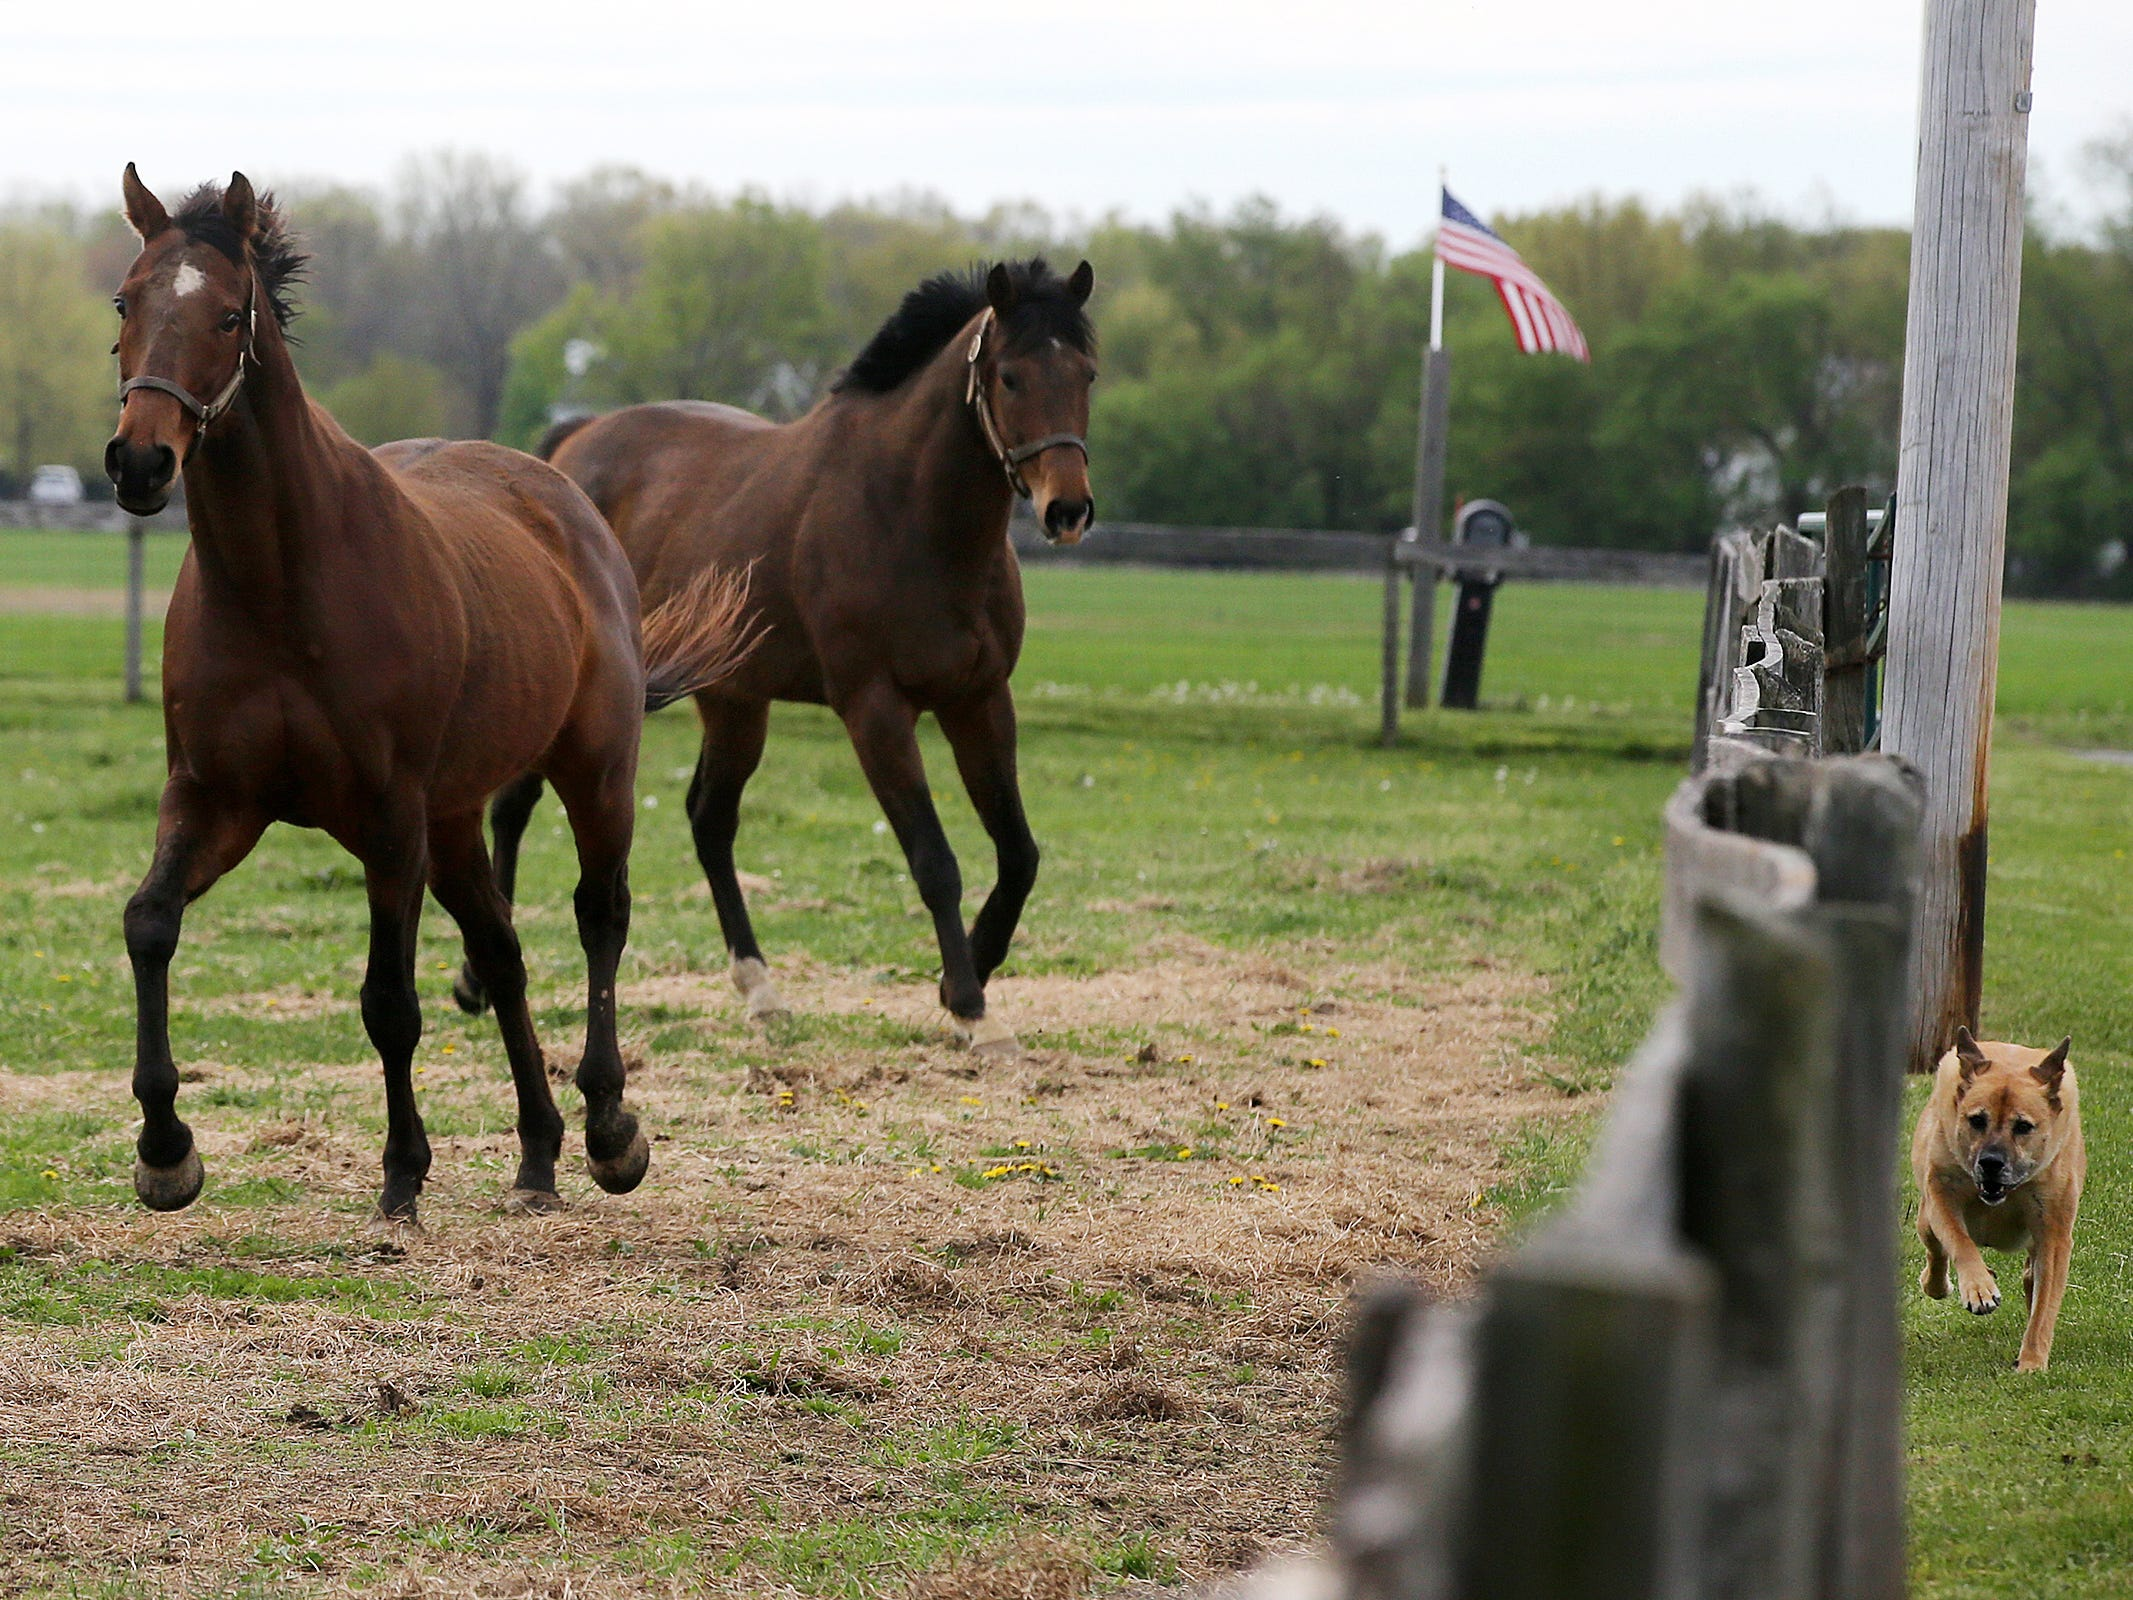 Livin Large, 13, and Jazz Man, 6, both retired thoroughbreds rescued by Second Call, a thoroughbred adoption and rescue organization that helps find homes for retired Monmouth Park race horses, run together at Hill Haven Farm in Millstone Twp., NJ Thursday, April 25, 2019.  Lindsey, a dog owned by Eileen Munyak, who owns Hill Haven Farm, runs along the fence line with them.